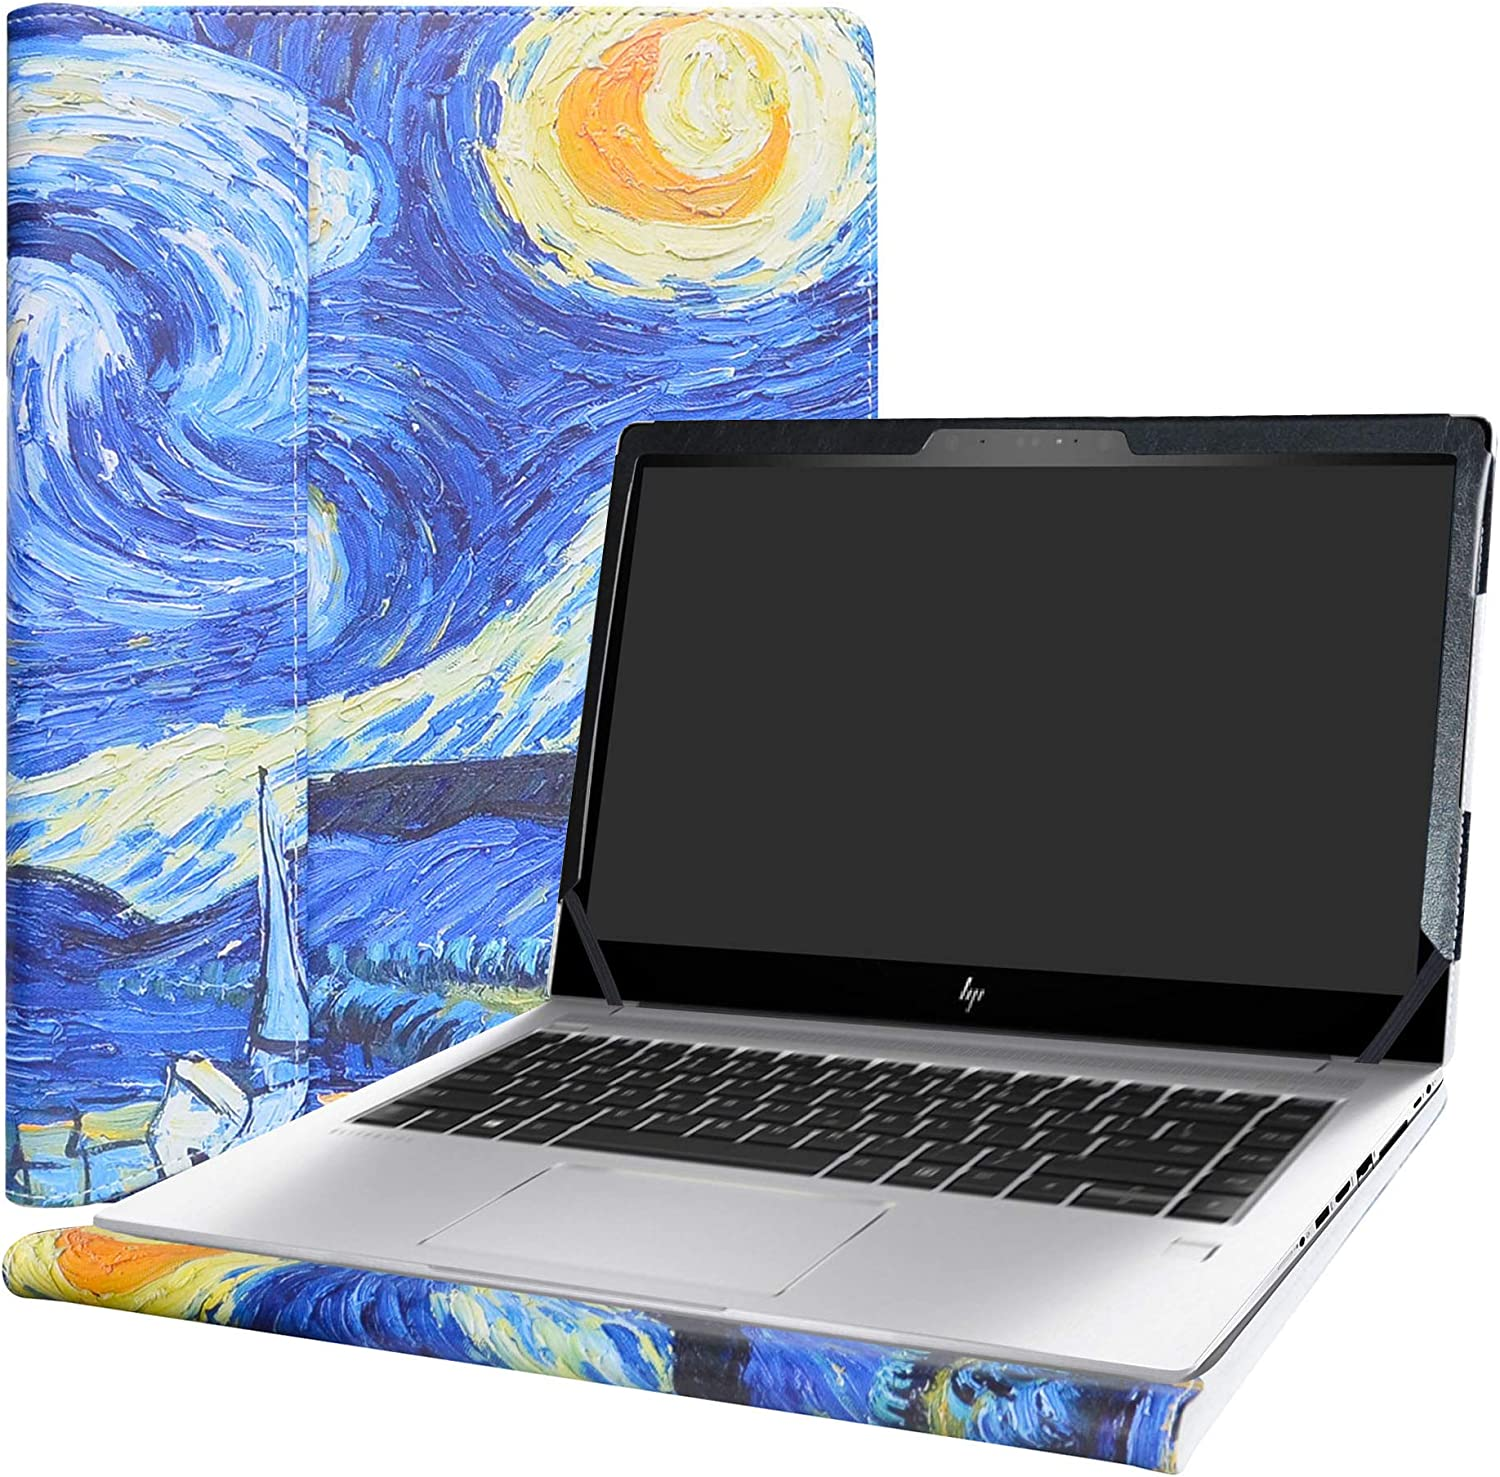 "Alapmk Protective Case Cover for 15.6"" HP EliteBook 850 G6 G5 & EliteBook 755 G5 & ZBook 15u G6 G5 Laptop(Note:Not fit EliteBook 850 G4/G3/G2 & EliteBook 755 G4/G3 & ZBook 15u G4/G3),Starry Night"